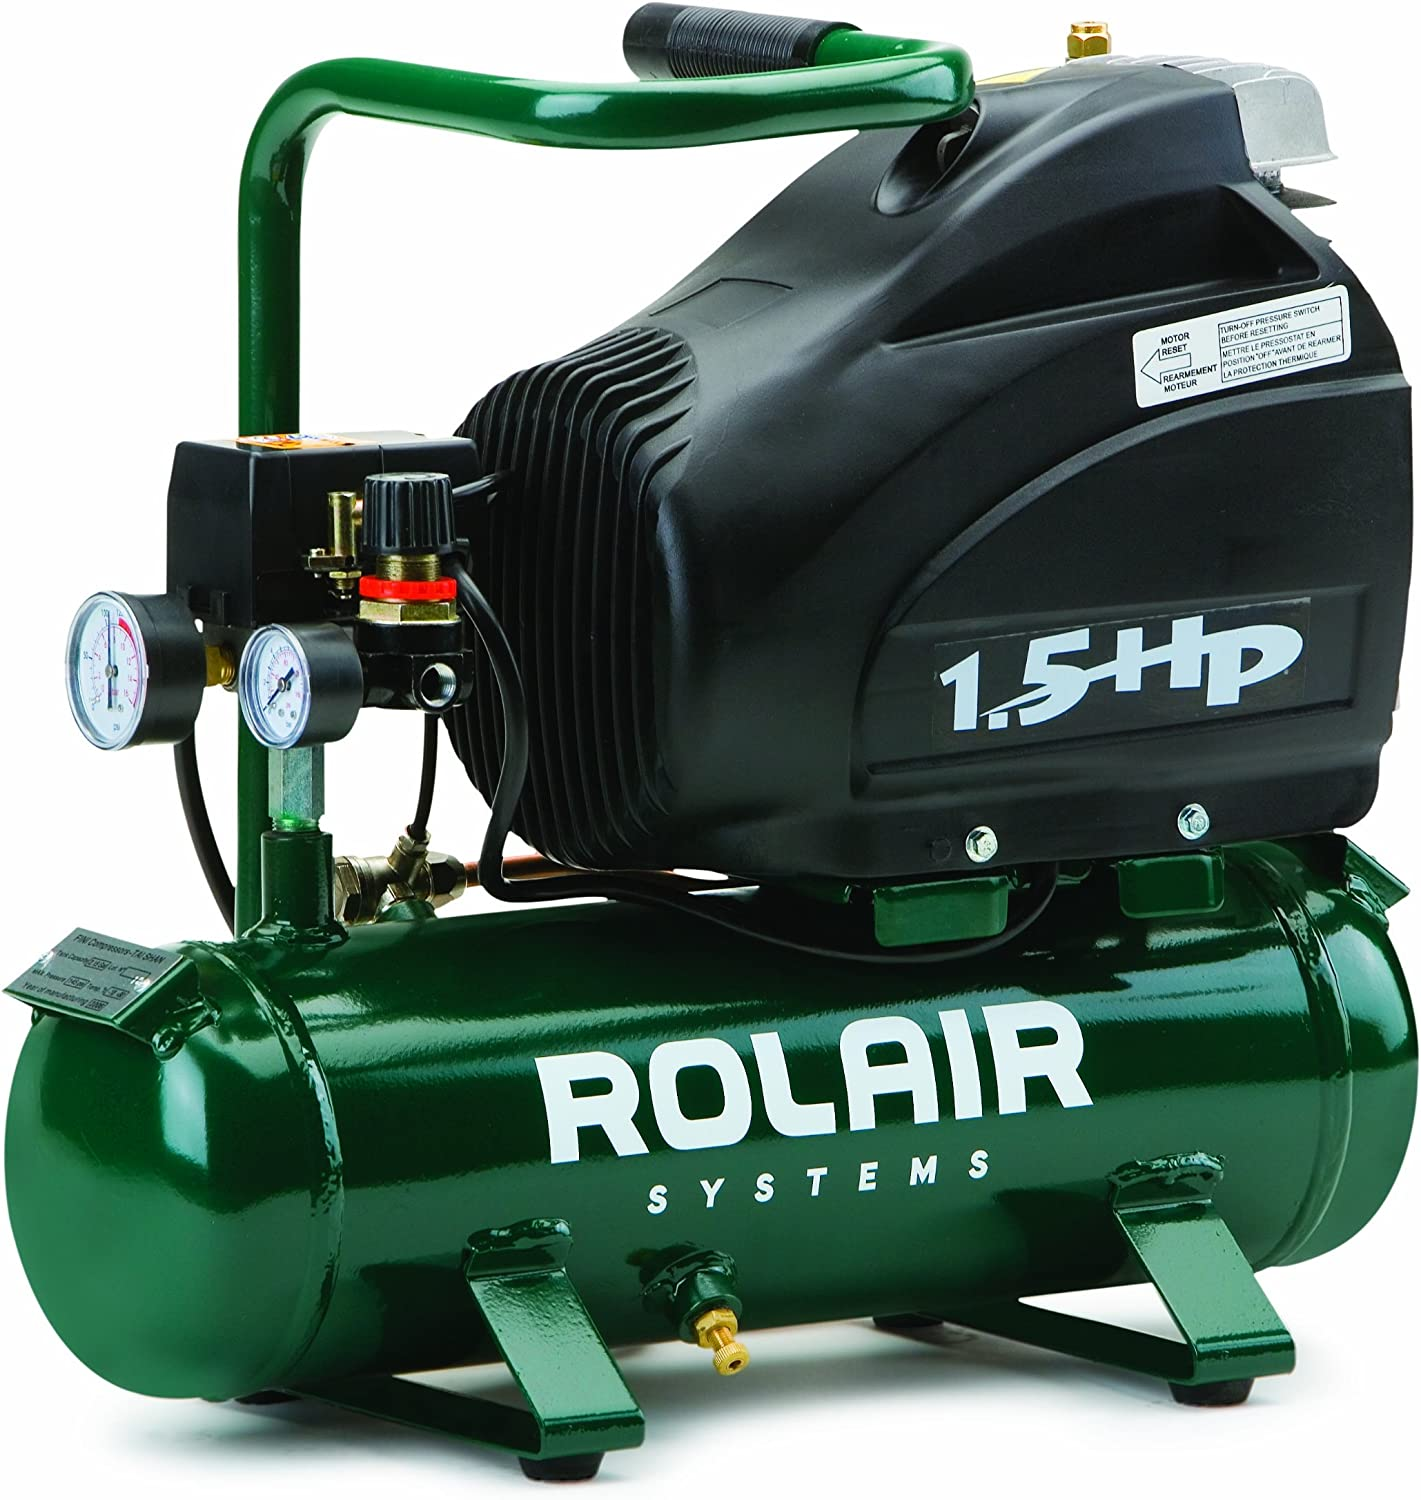 Rolair FC1500HS3 1.5 HP Compressor with Overload Protection and Manual Reset